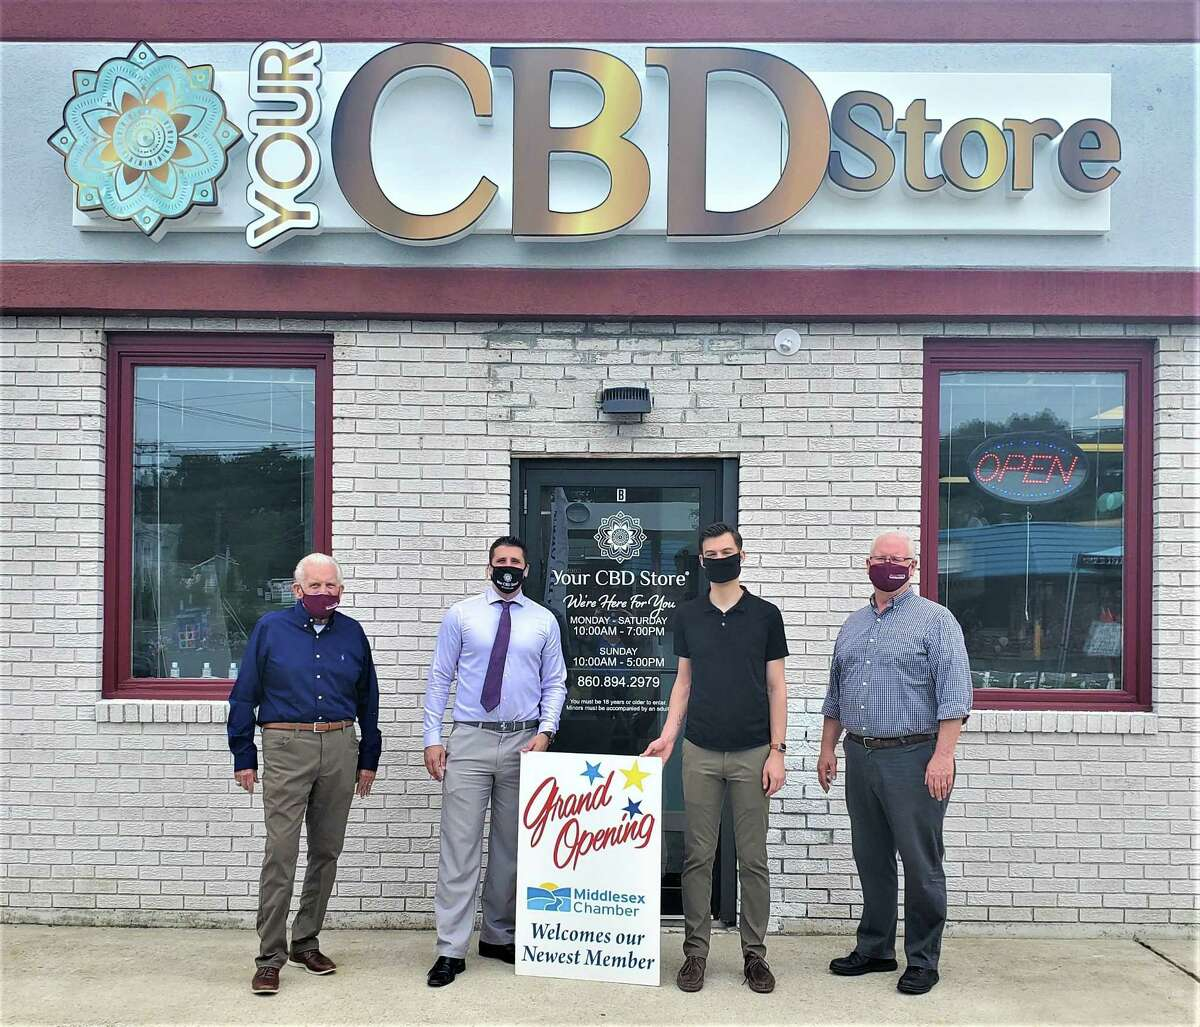 From left, President of the Middlesex Chamber of Commerce Larry McHugh, Your CBD Store owner Steven Nardiello, Middletown Mayor Ben Florsheim and Chamber Chairman Tom Byrne participated in the grand opening recently.